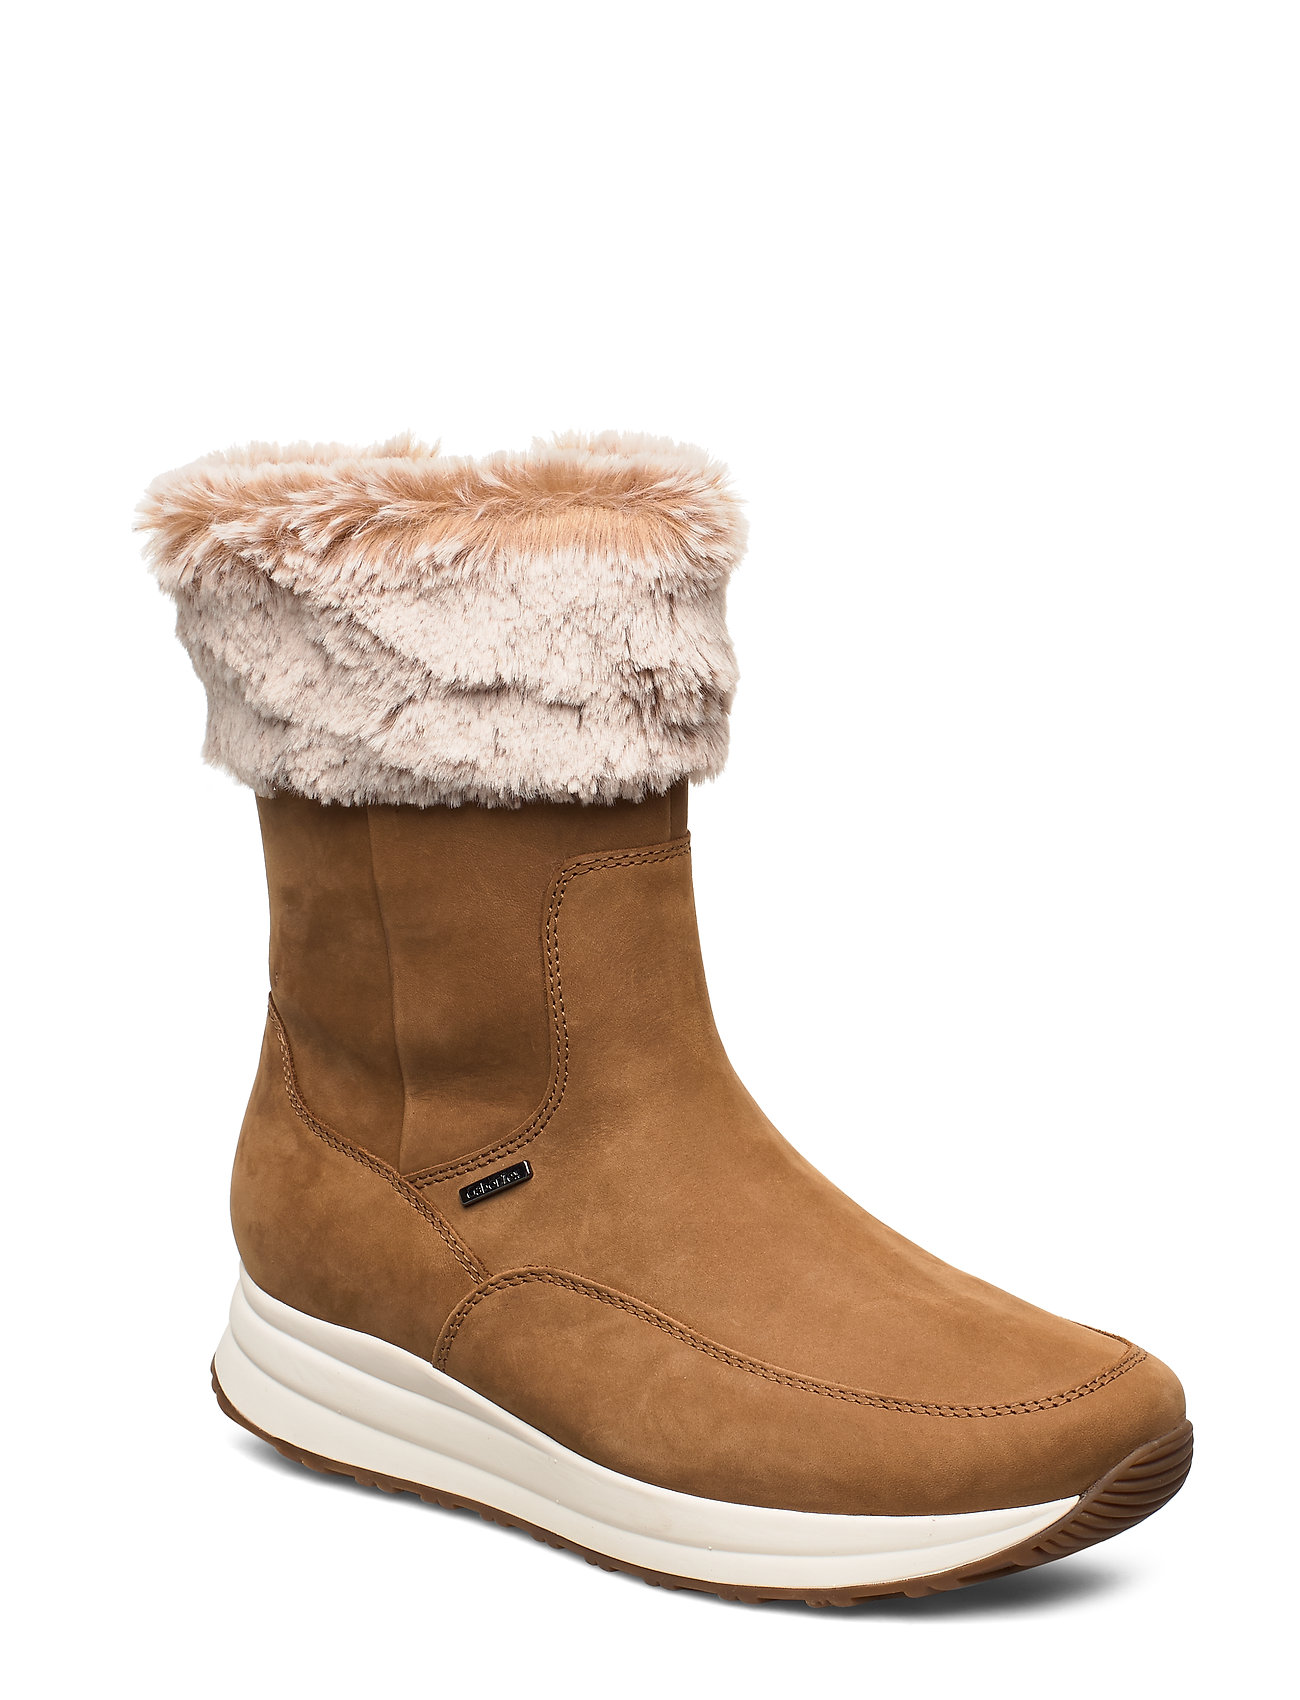 Image of Ankle Boot With Gabor-Tex Shoes Boots Ankle Boots Ankle Boots Flat Heel Brun Gabor (3261451083)